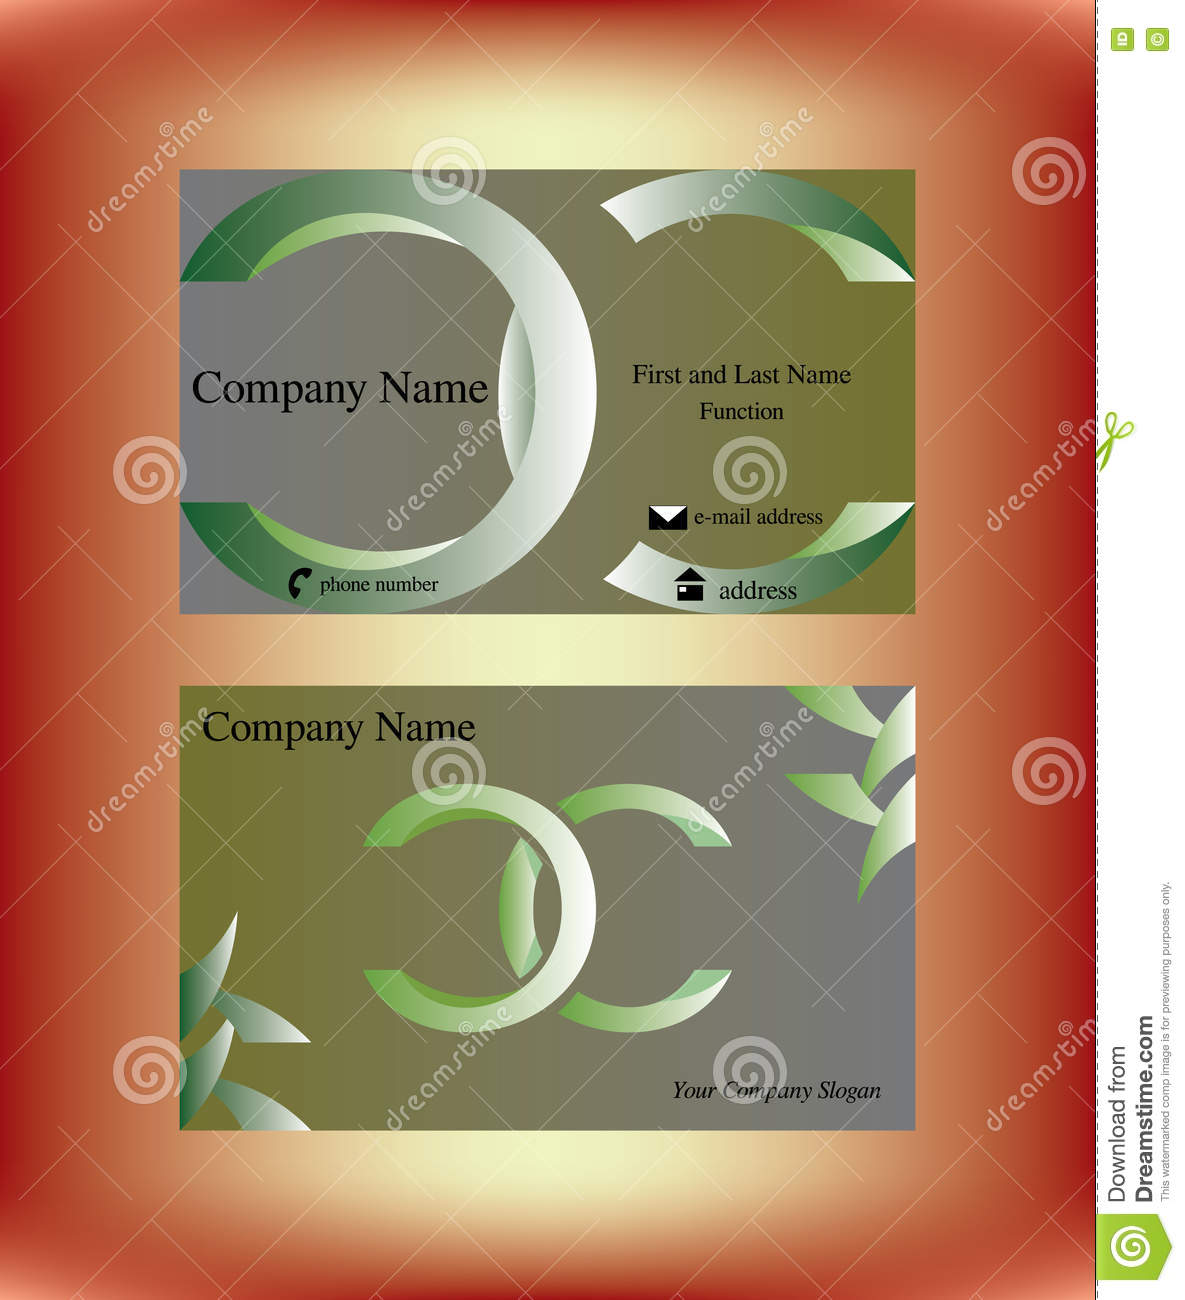 Business Card With Two Green C Letters Stock Vector Illustration